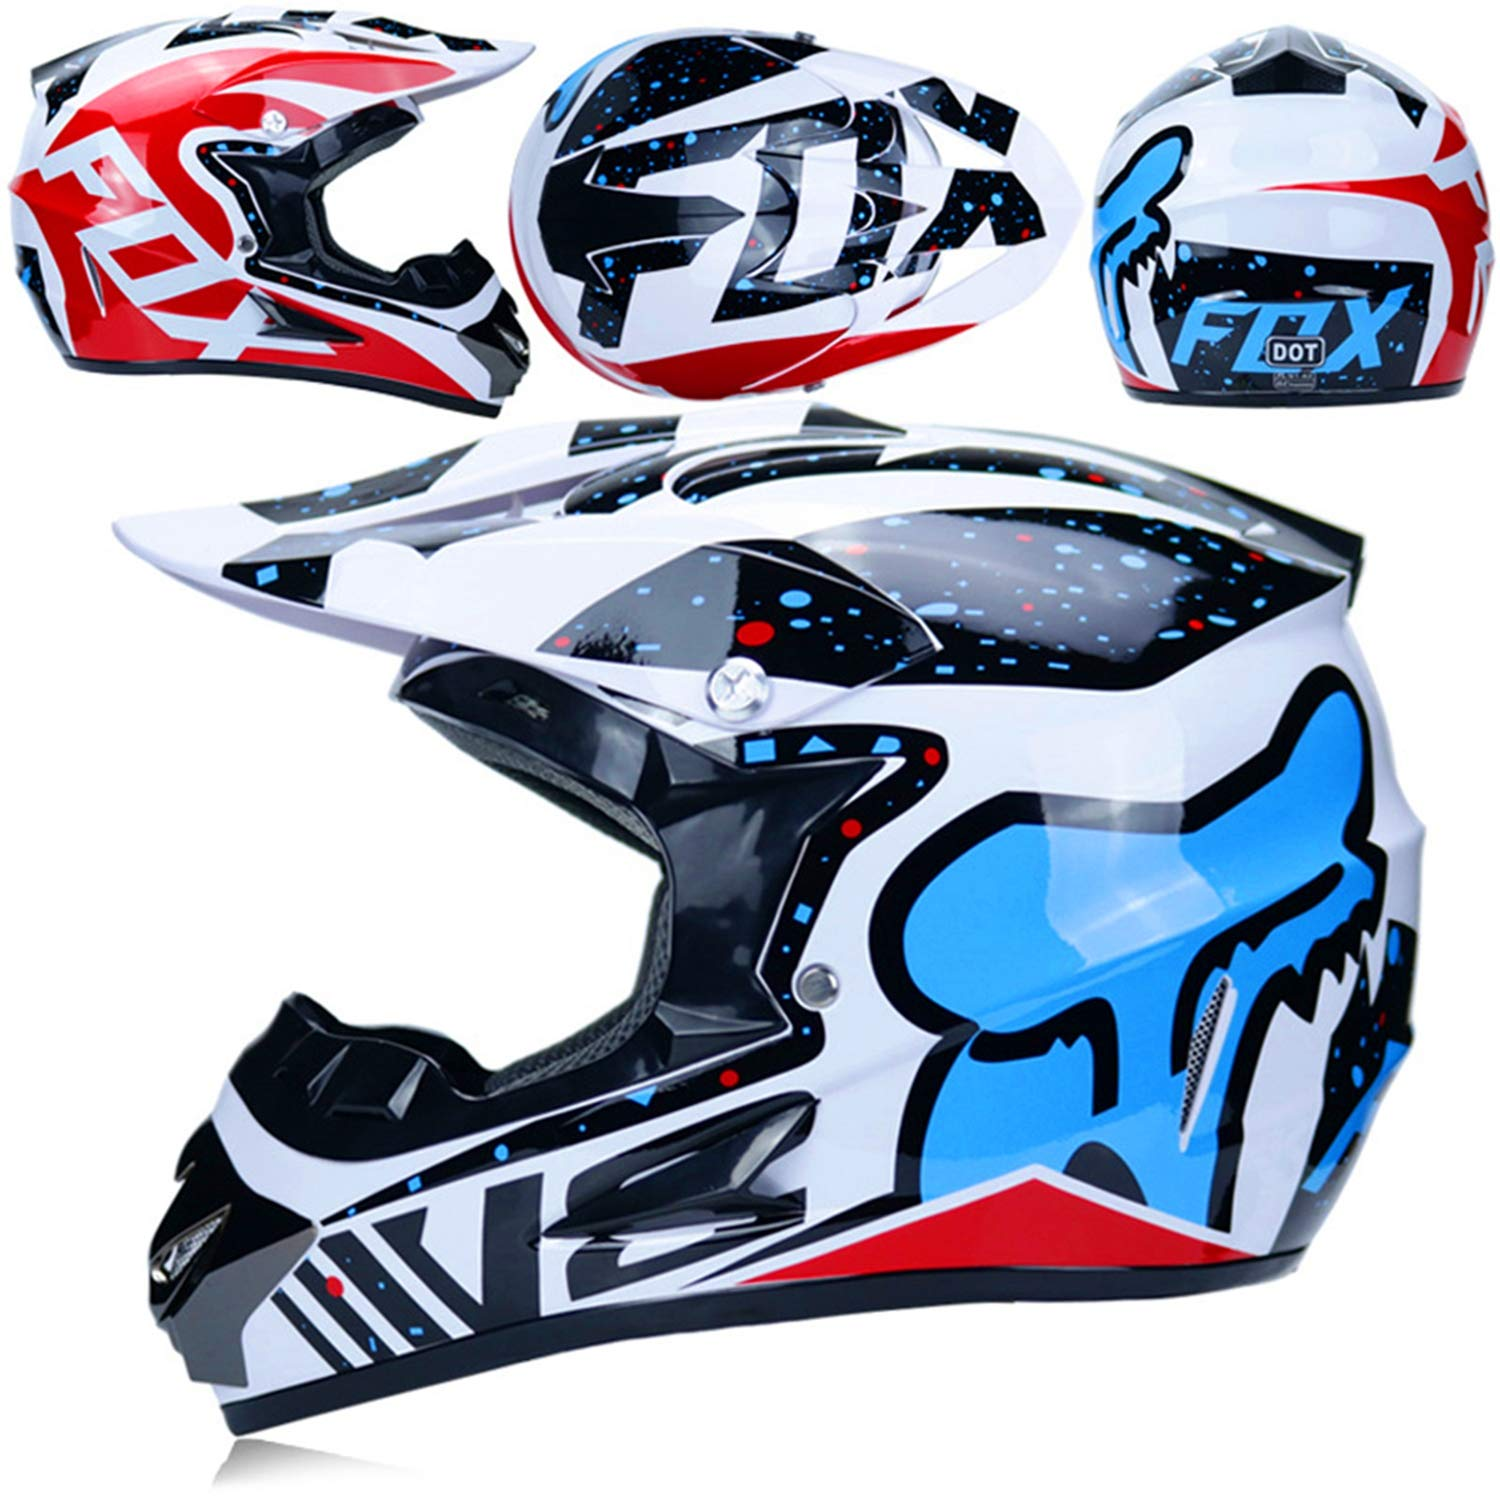 Multicolor with Goggles Gloves Mask MX Motorcycle Helmet//Motorcycle DH Off-Road Enduro ATV BMX MTB Downhill Dirt Bikes Quad Motorbike Cross Country